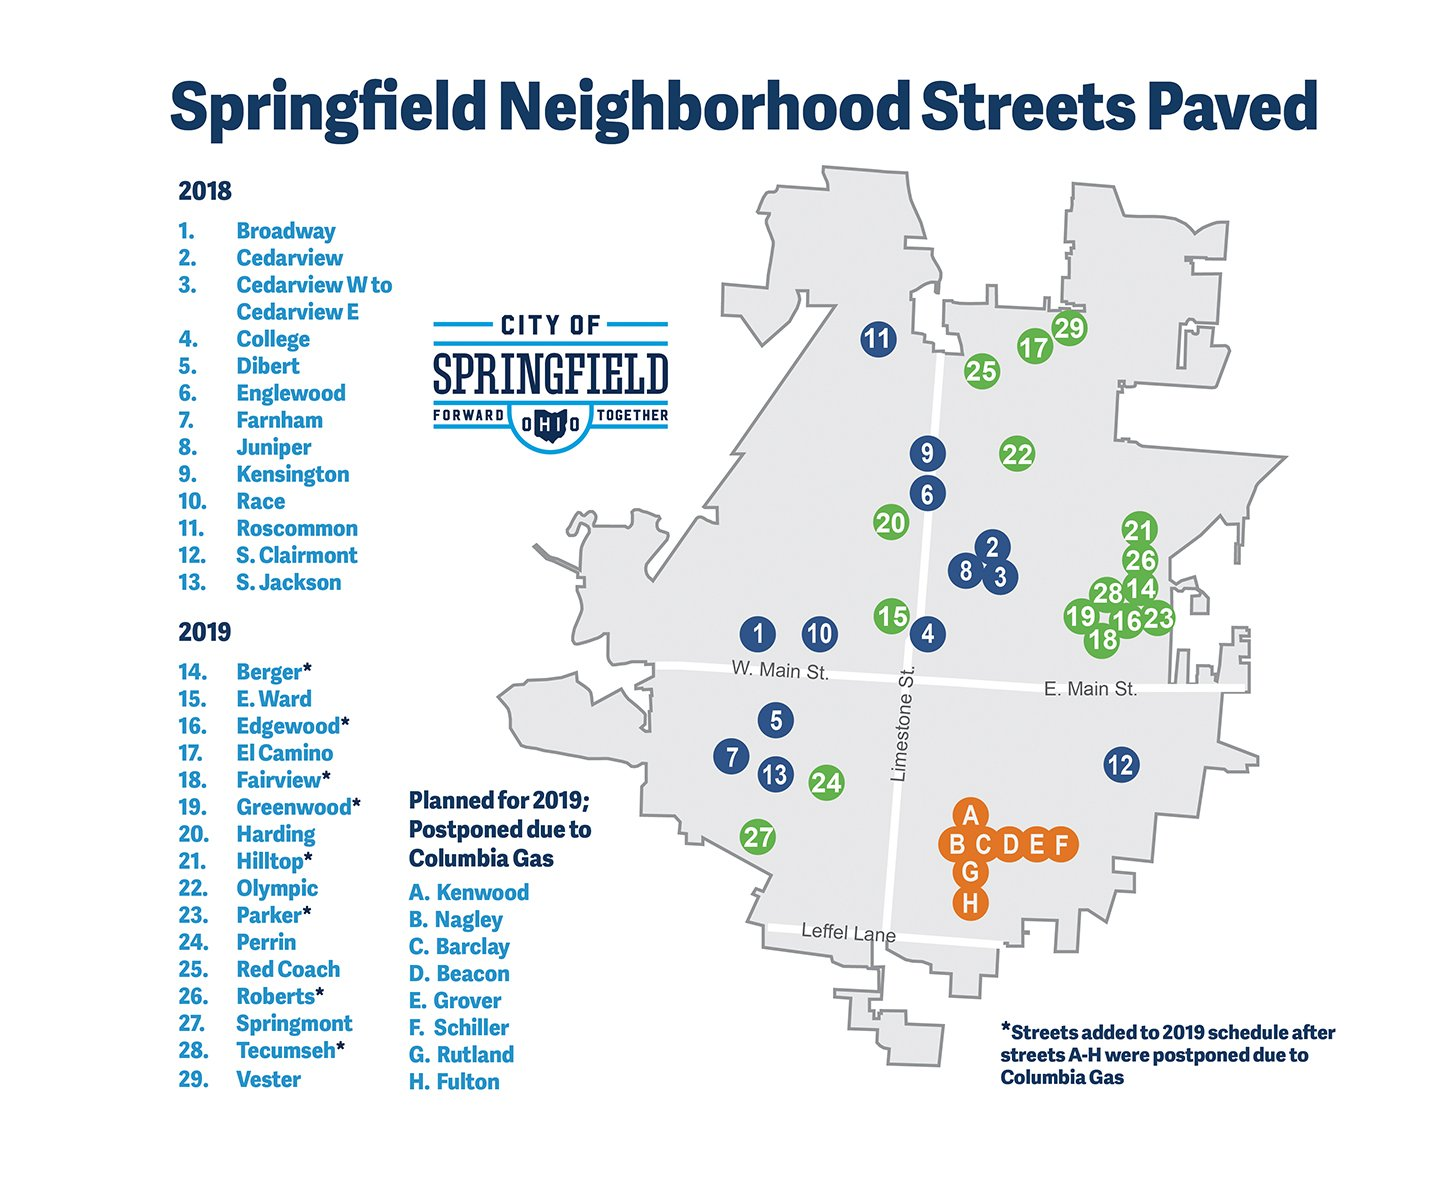 See A Map of Streets Paved 2018-2019